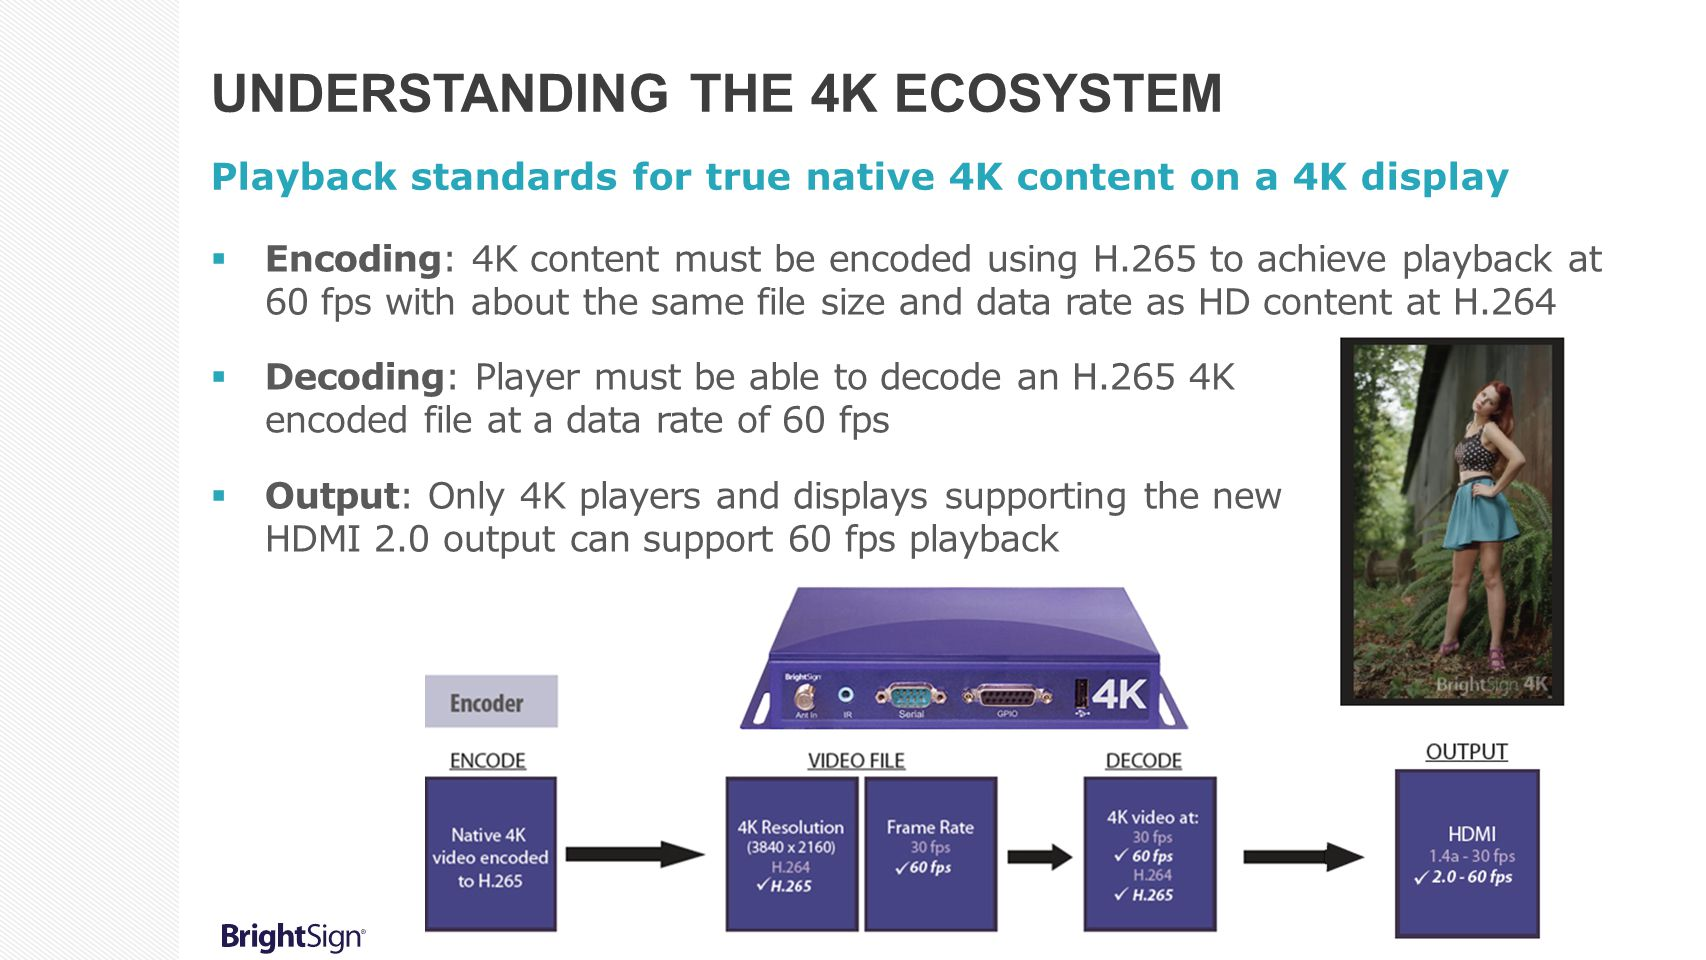 UNDERSTANDING THE 4K ECOSYSTEM Playback standards for true native 4K content on a 4K display  Encoding: 4K content must be encoded using H.265 to achieve playback at 60 fps with about the same file size and data rate as HD content at H.264  Decoding: Player must be able to decode an H.265 4K encoded file at a data rate of 60 fps  Output: Only 4K players and displays supporting the new HDMI 2.0 output can support 60 fps playback